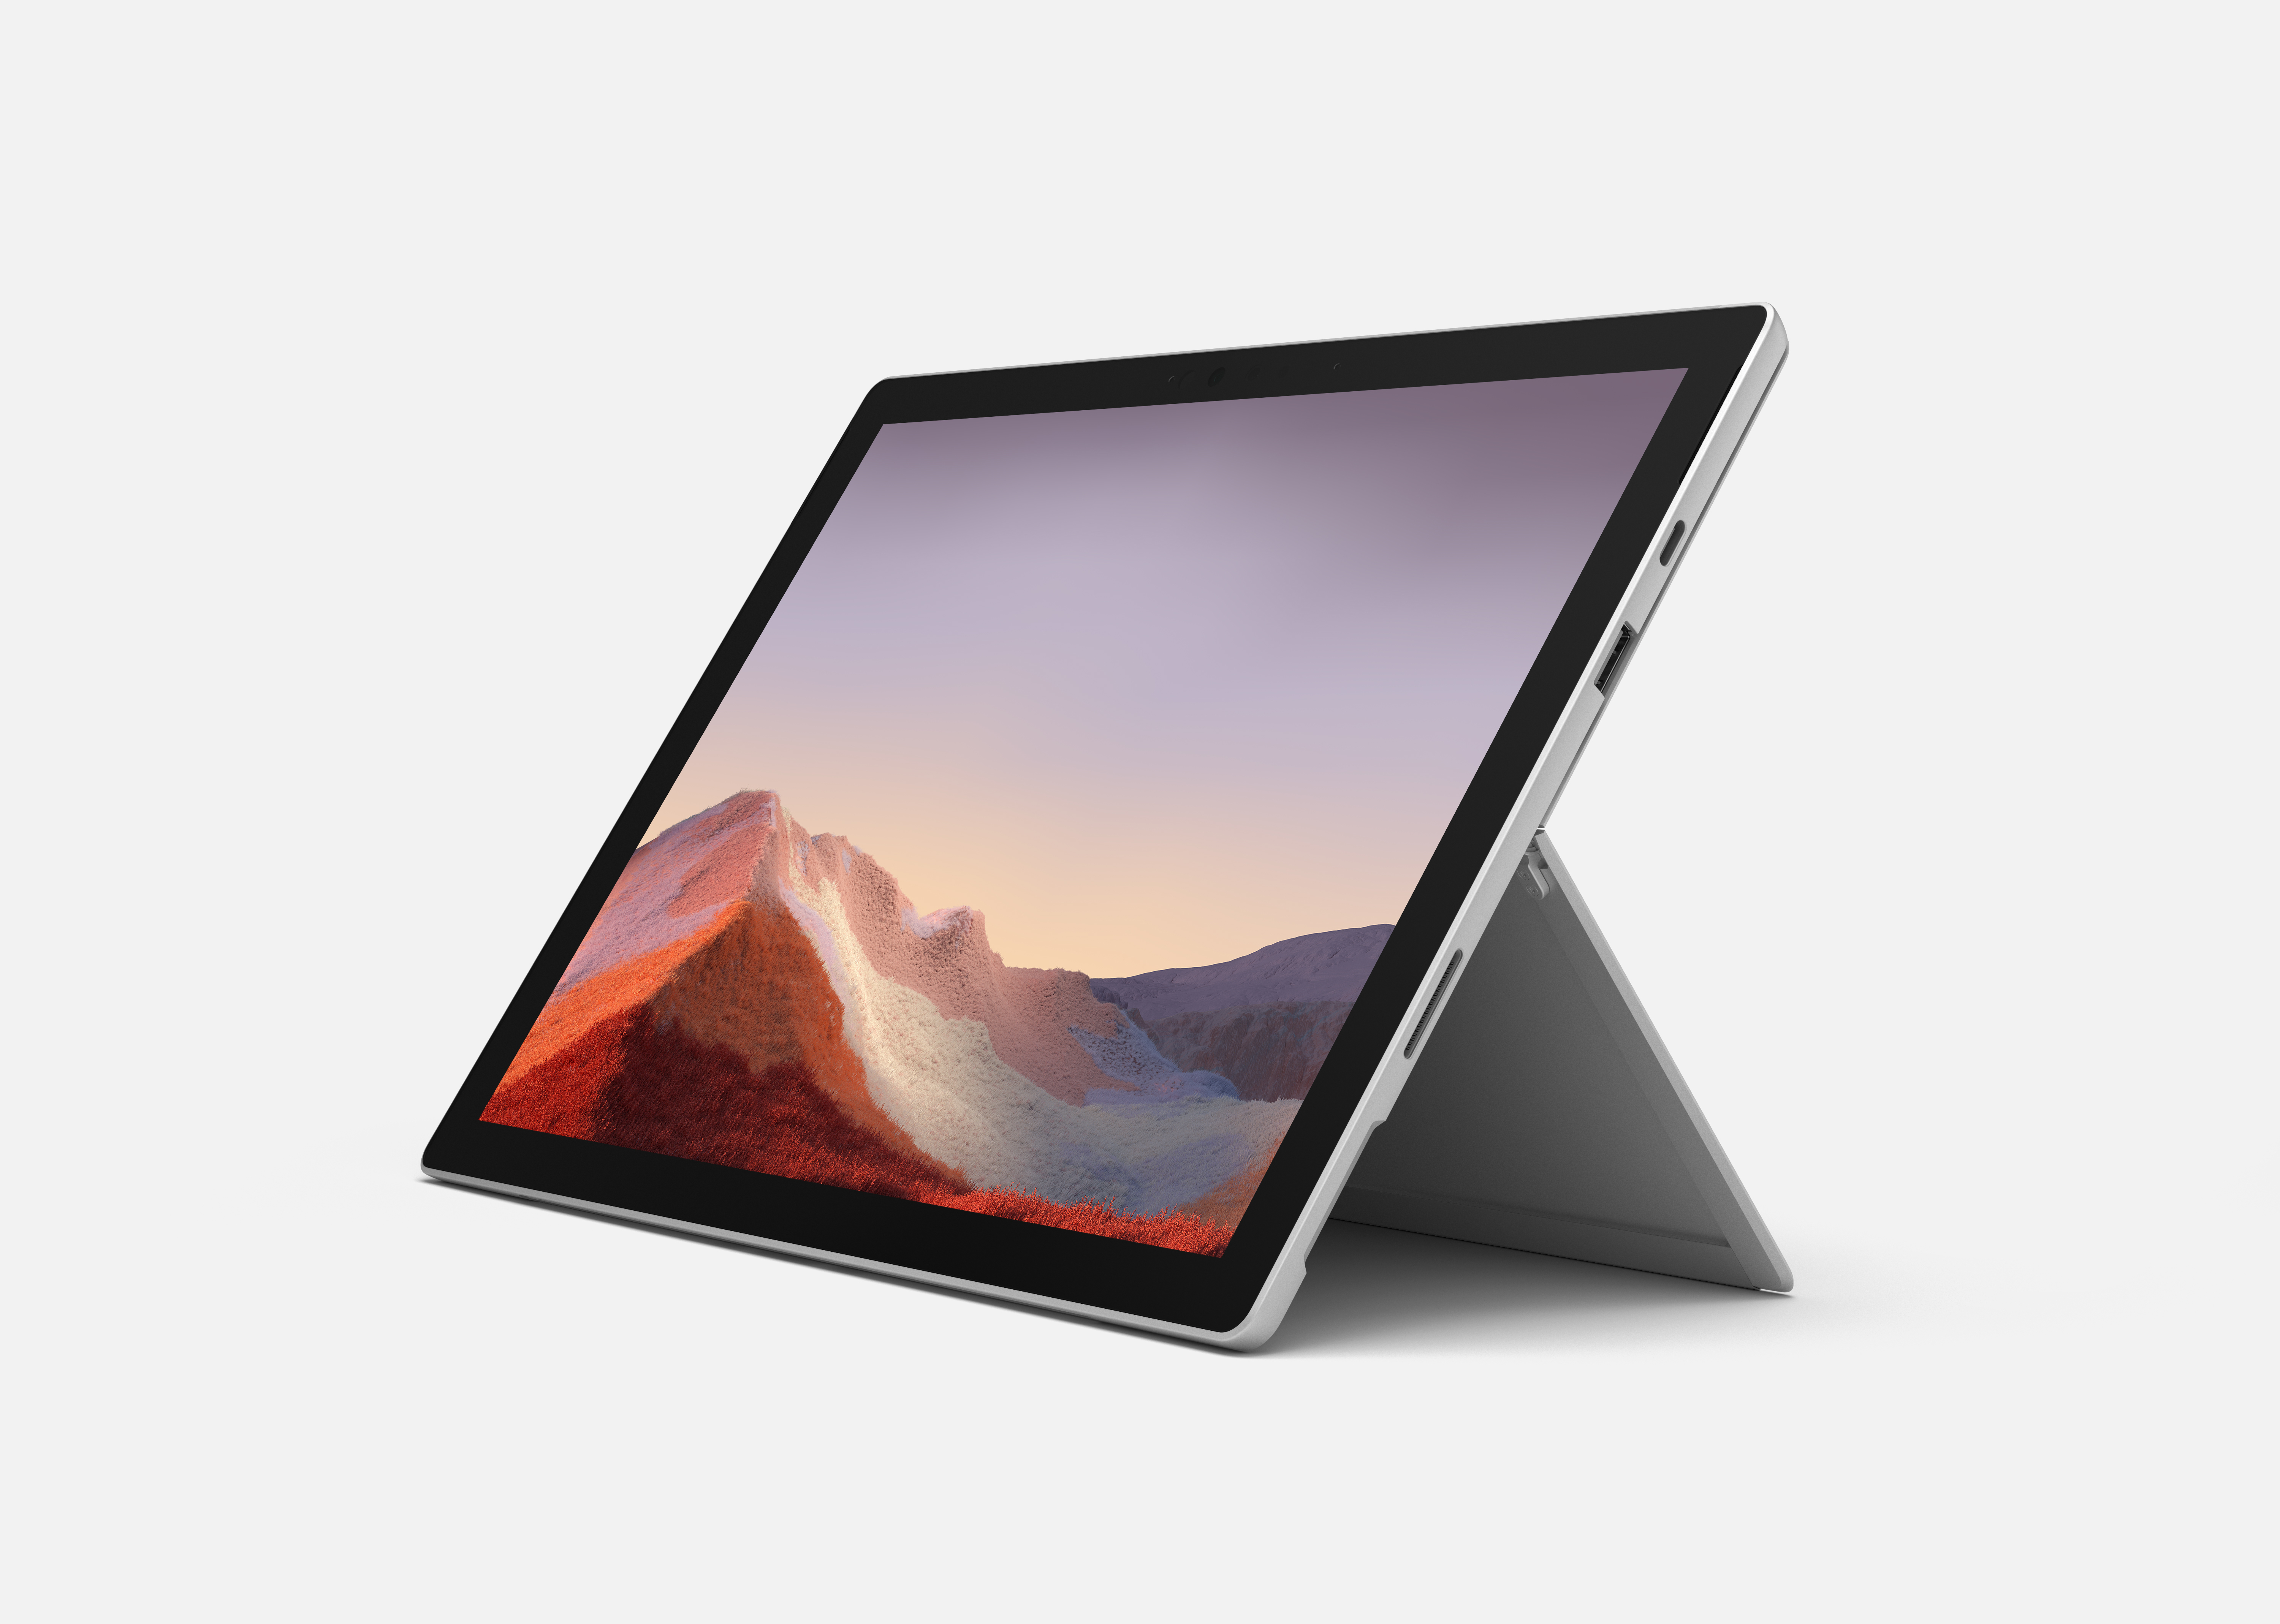 Microsoft Surface Pro 7 - 31,2 cm (12.3 Zoll) - 2736 x 1824 Pixel - 256 GB - 8 GB - Windows 10 Home - Platin